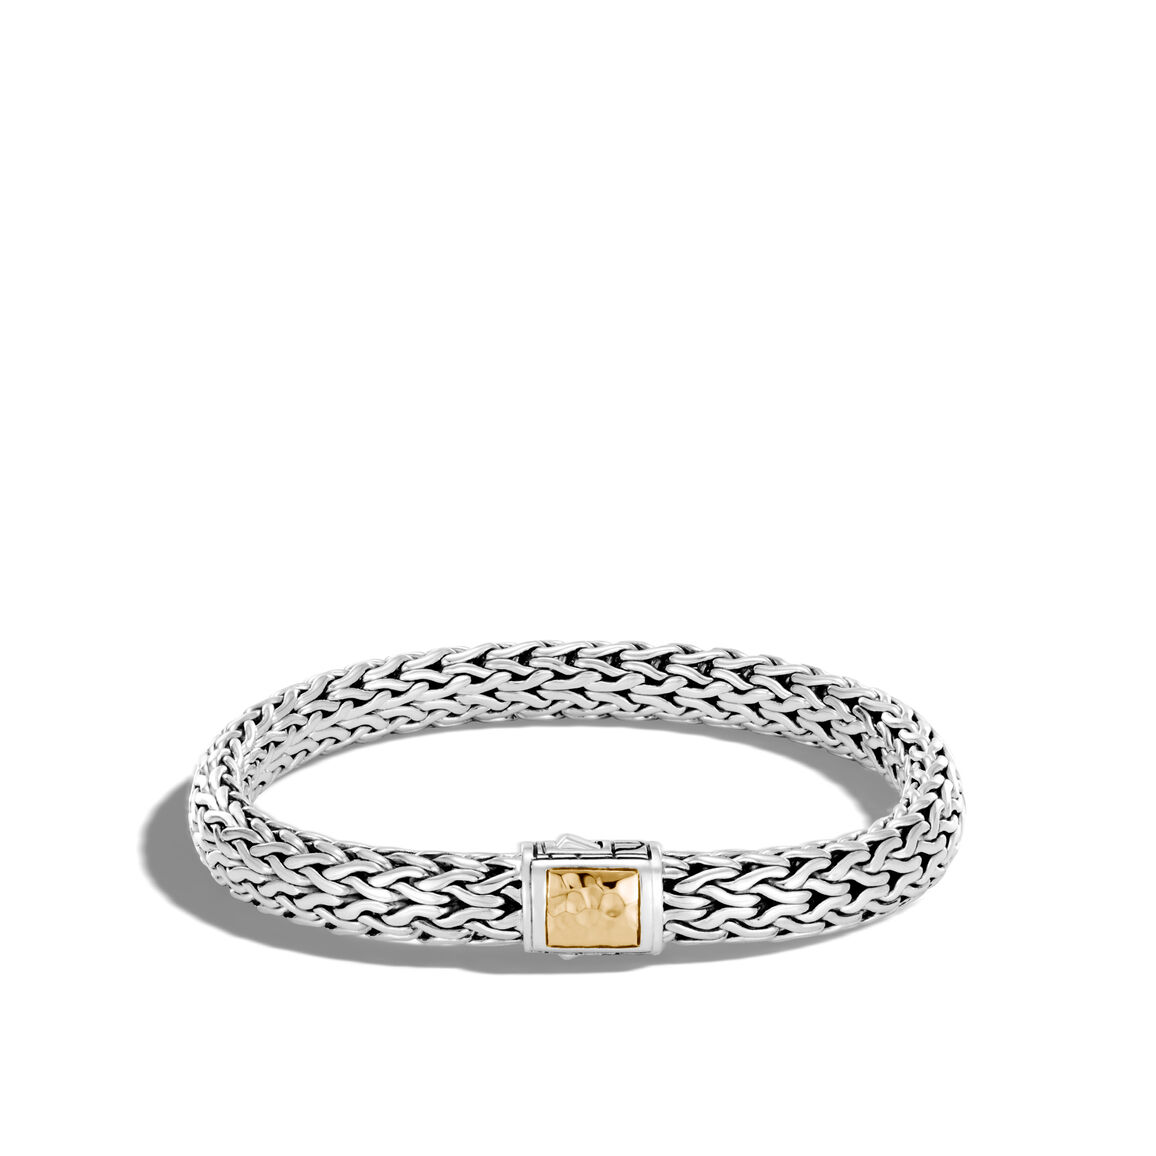 Classic Chain 7.5MM Hammered Clasp Bracelet, Silver, 18K